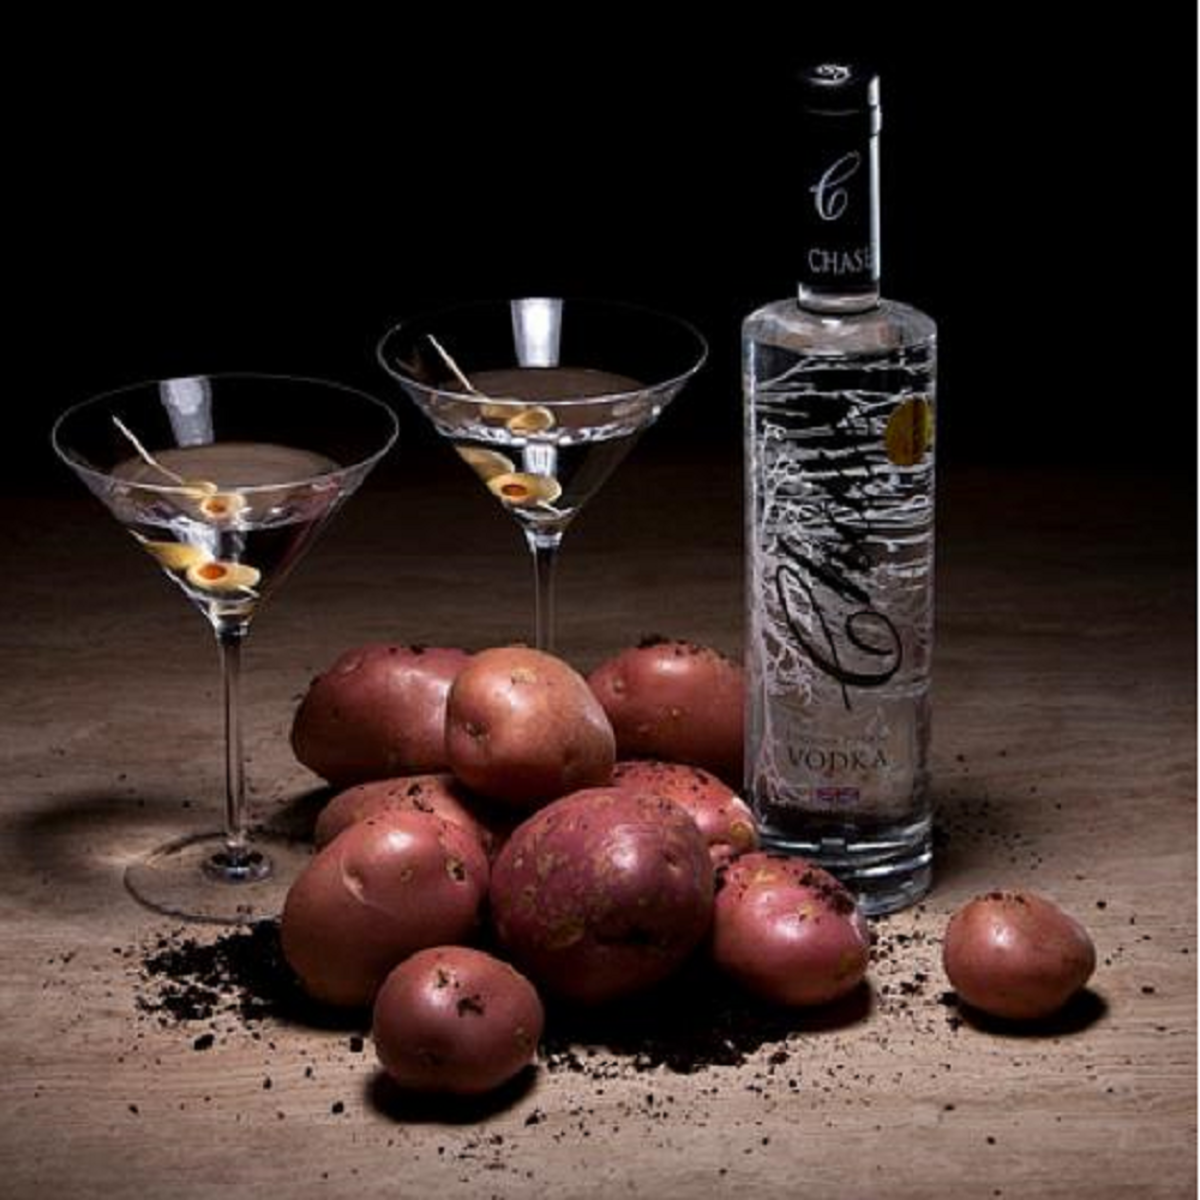 How To Make Your Own Vodka Using Potatoes